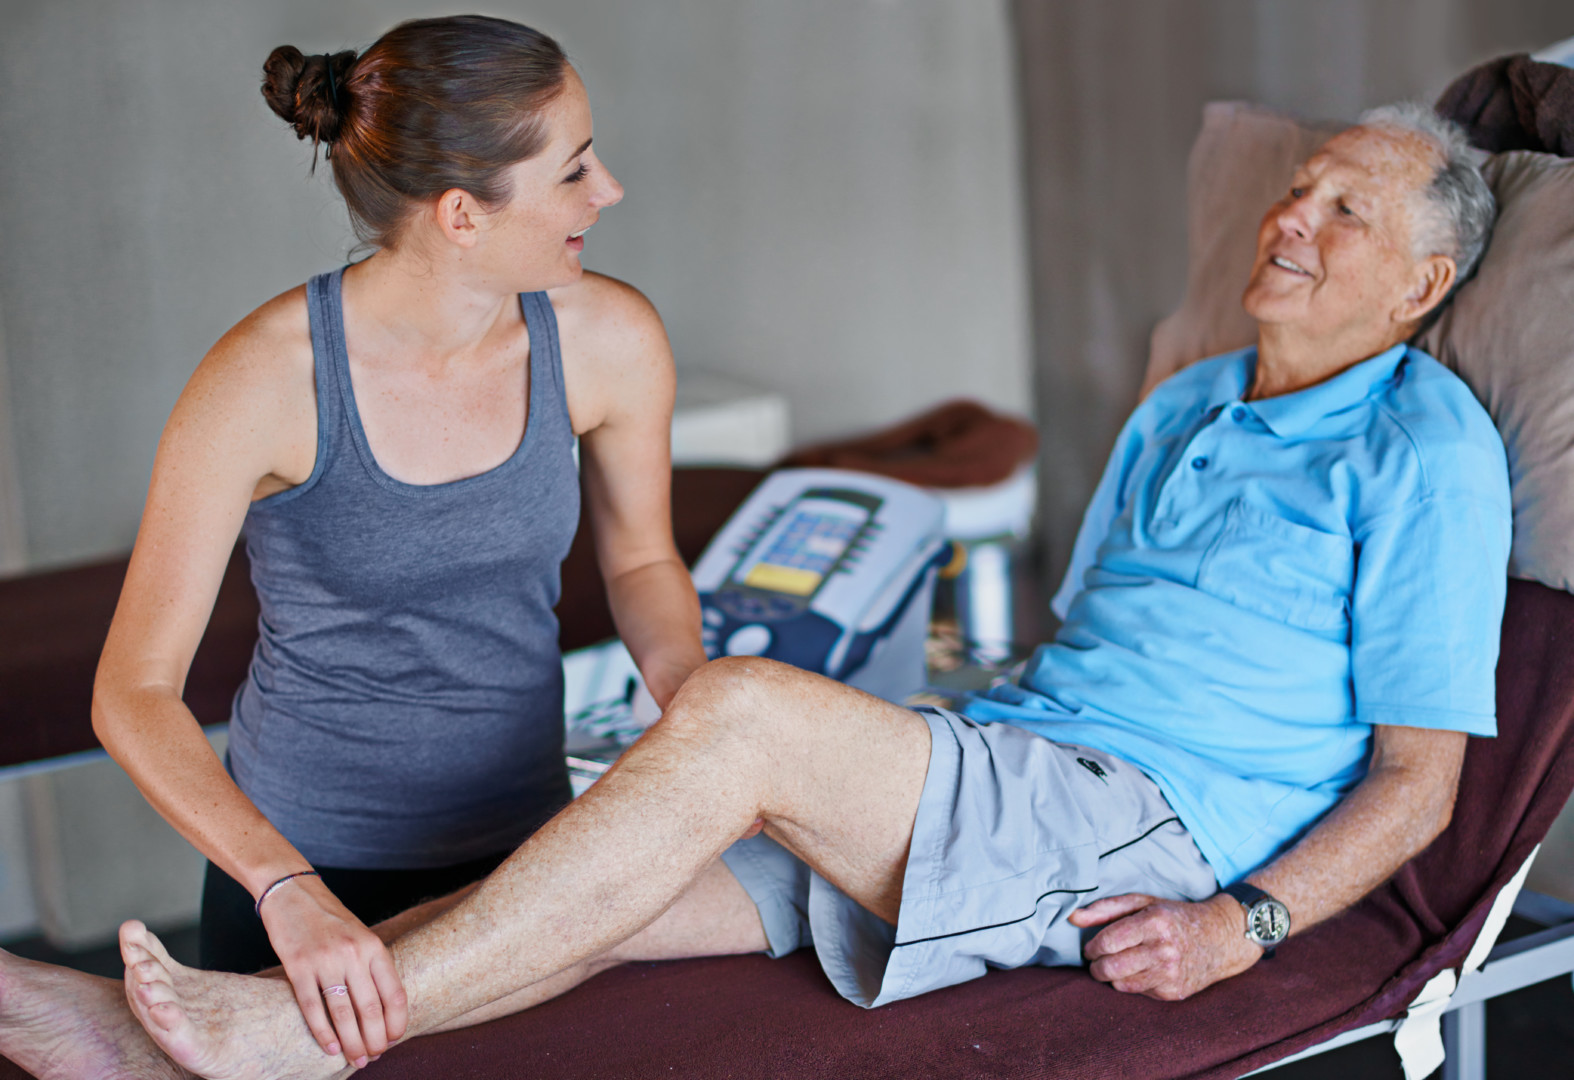 Physical therapist performing manual physical therapy